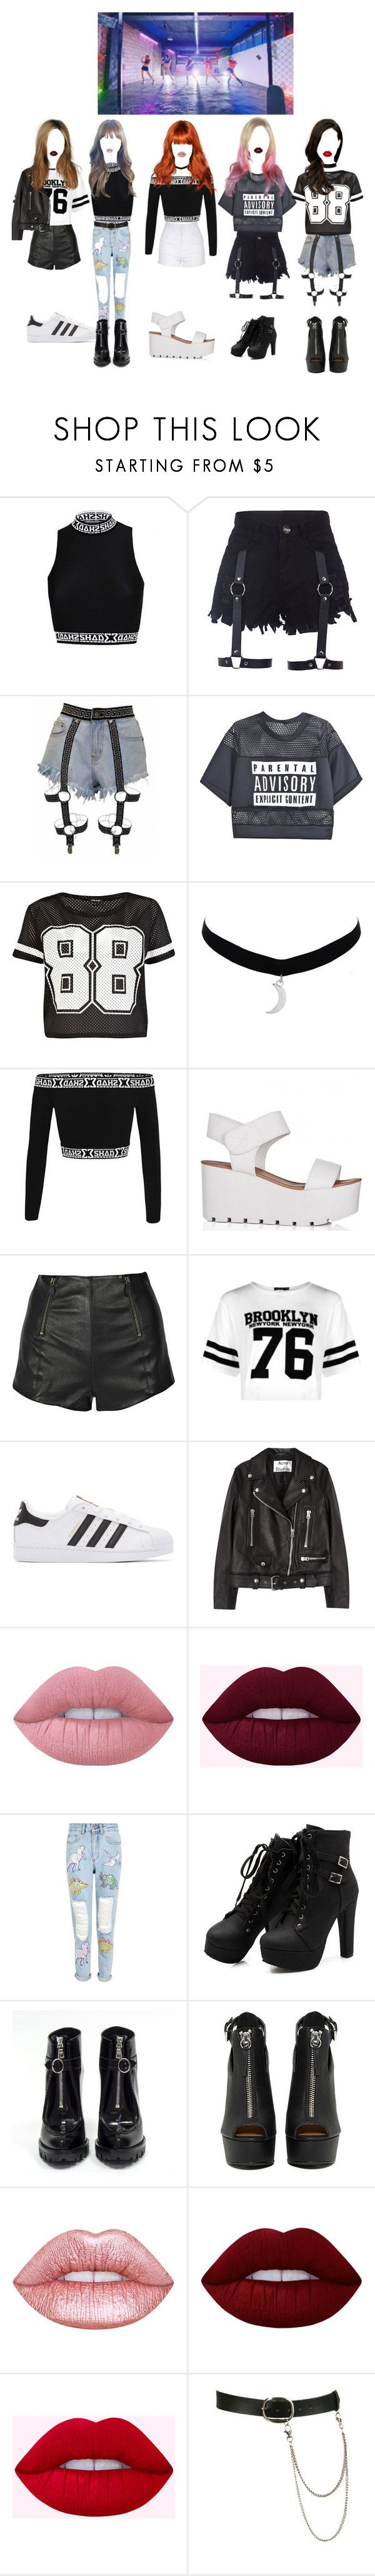 """""""Touch - TOXIC GIRLS DANCE"""" by official-toxicgrils ❤ liked on Polyvore featuring River Island, McQ by Alexander McQueen, Boohoo, adidas Originals, Acne Studios, Lime Crime, Topshop, Prada, Shoe Cult and Wet Seal"""